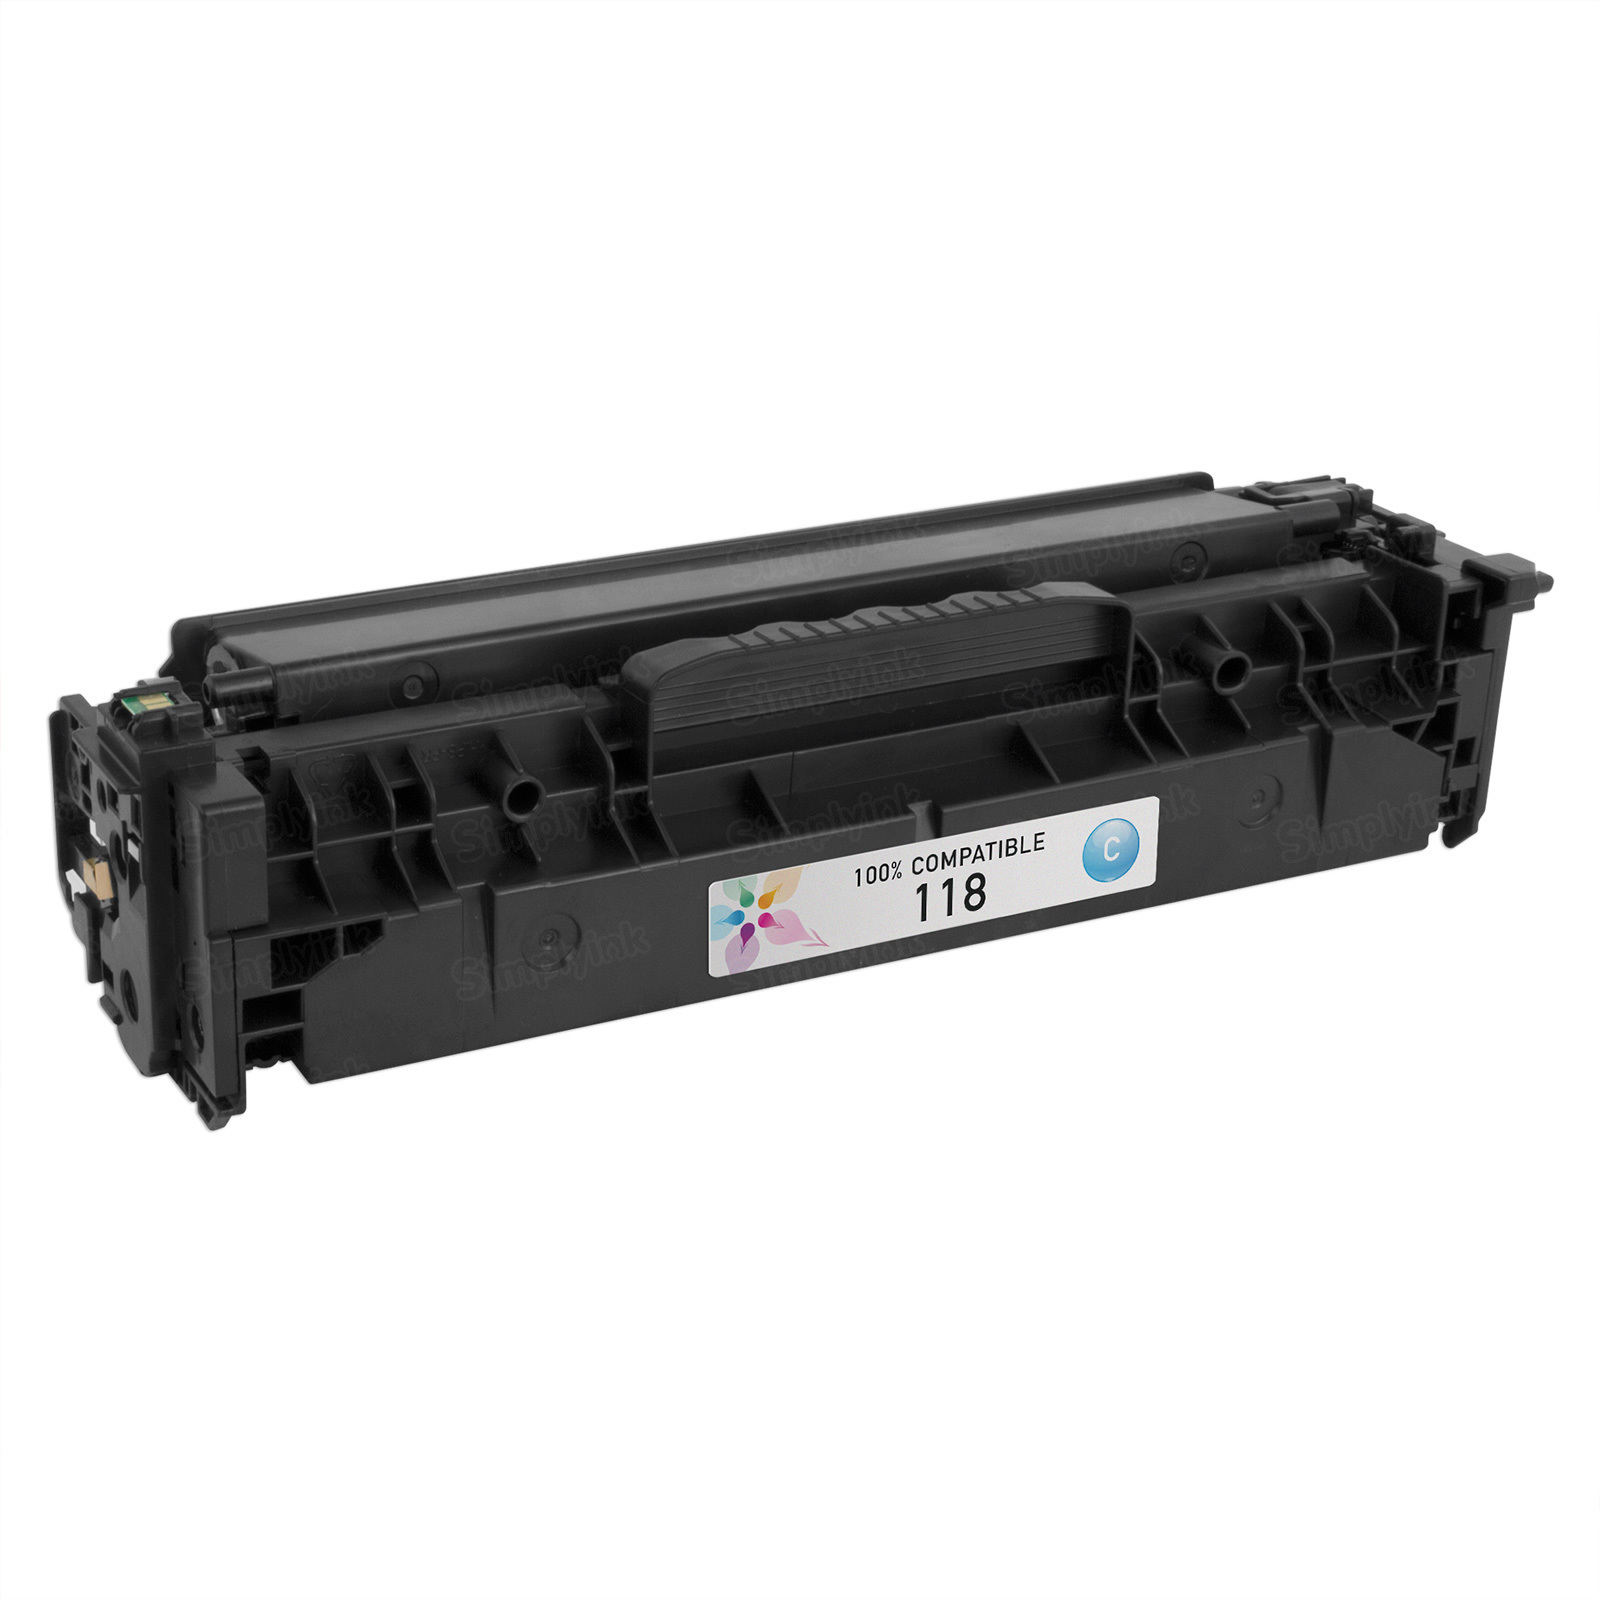 Canon 118 Cyan Toner Cartridge, Compatible